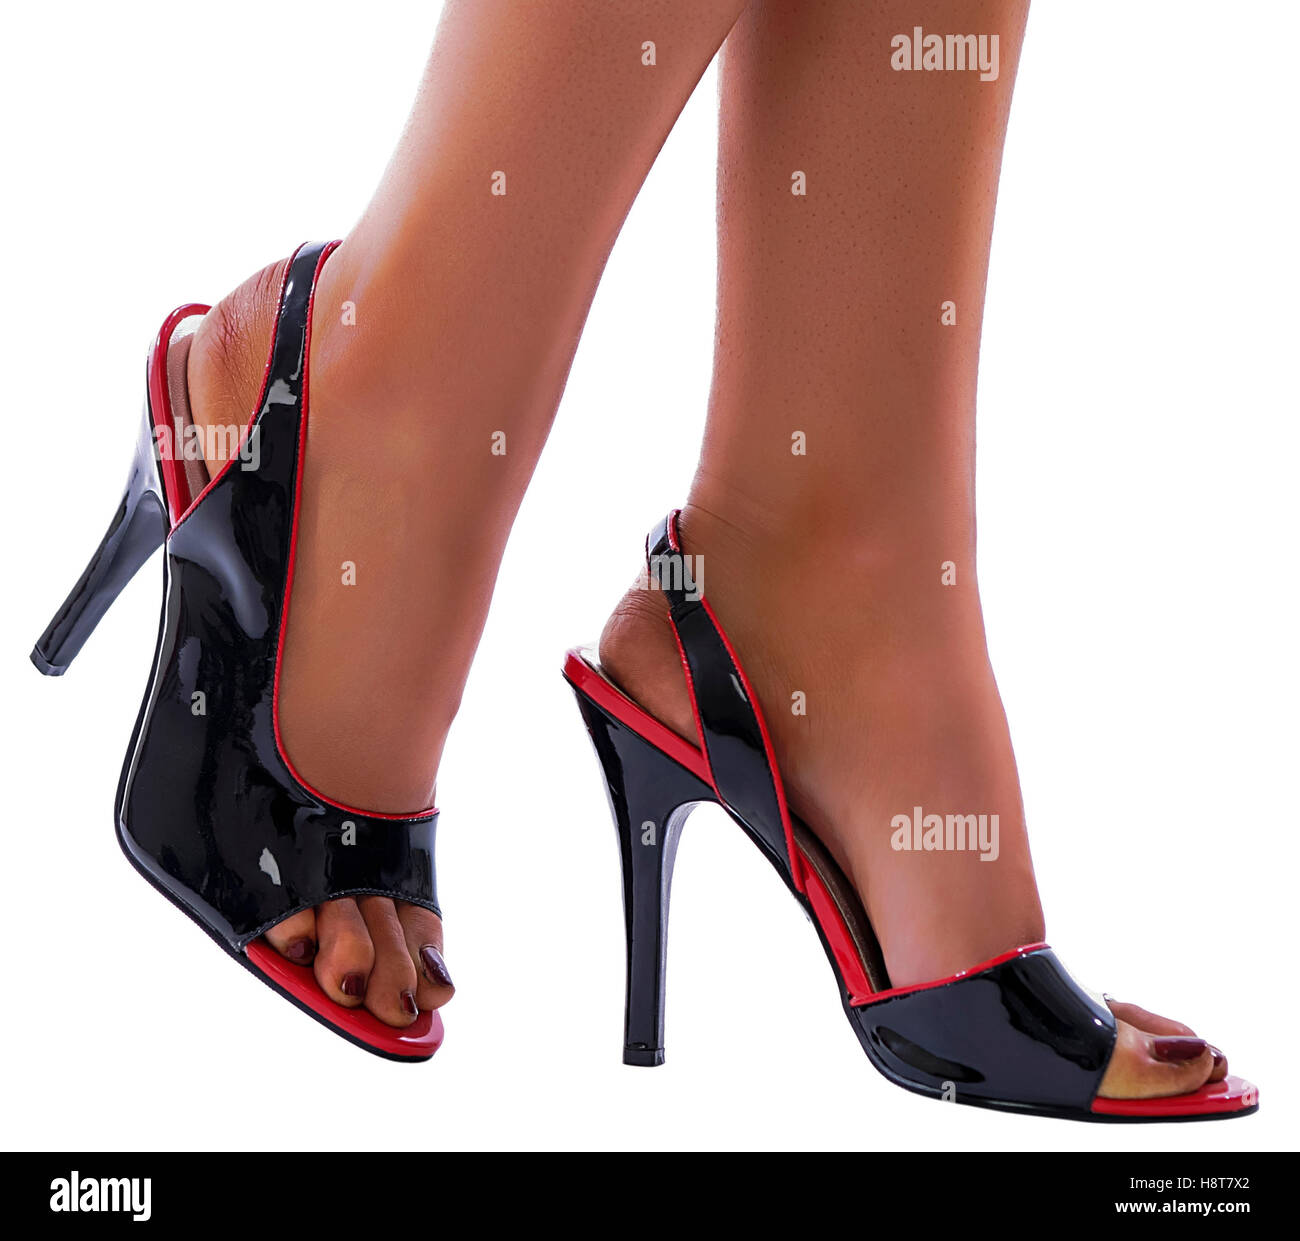 Black and red shiny patent leather stiletto high heels isolated on white background  Model Release: Yes.  Property - Stock Image